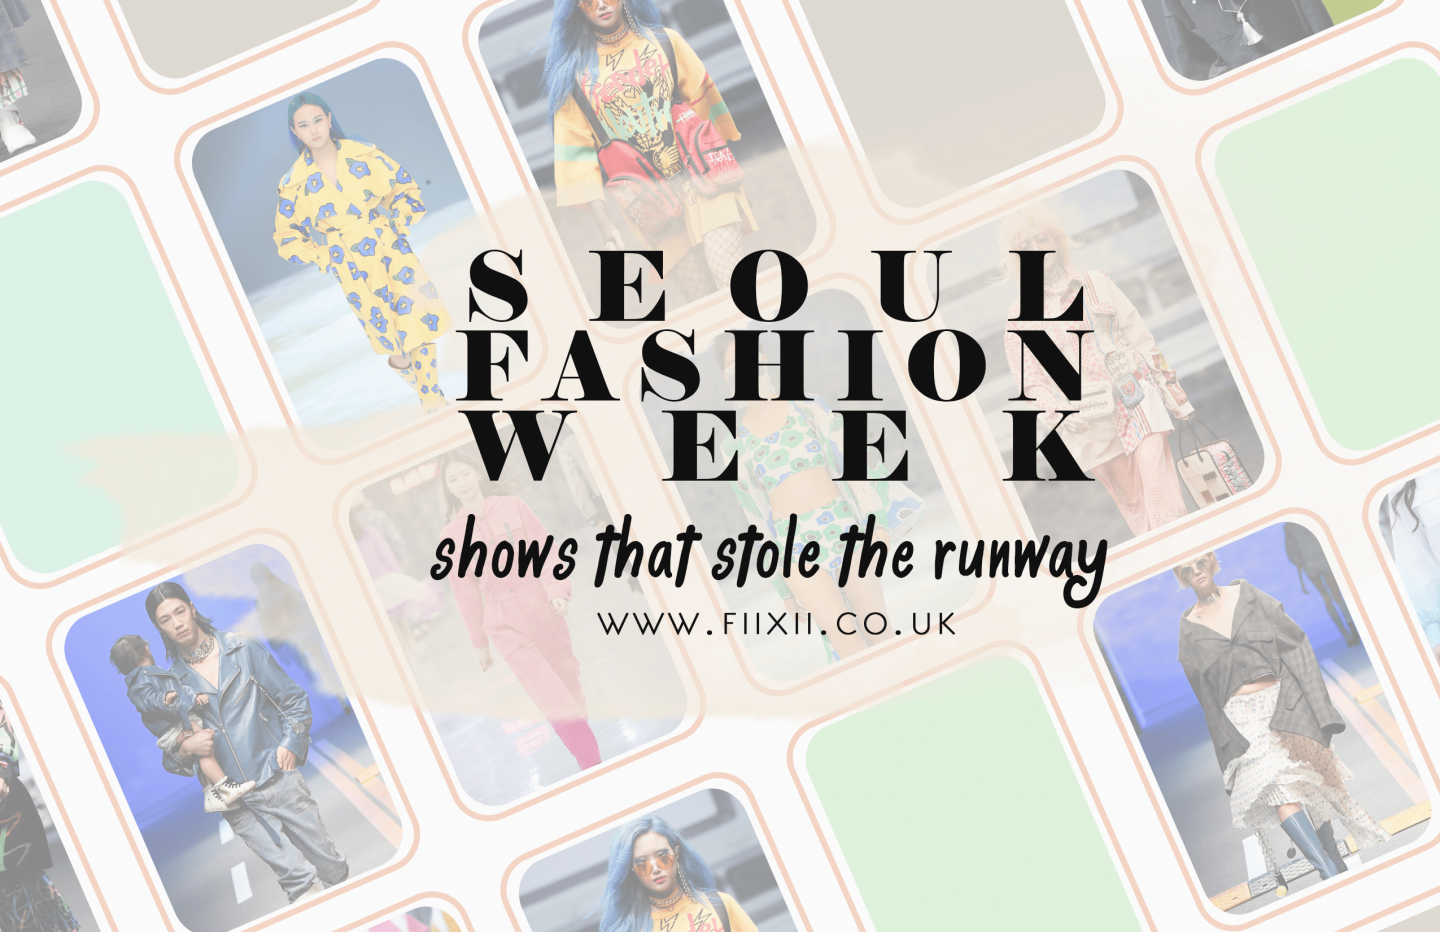 Shows that stole the runway at Seoul Fashion Week Spring Summer 2020 fiixii.co.uk